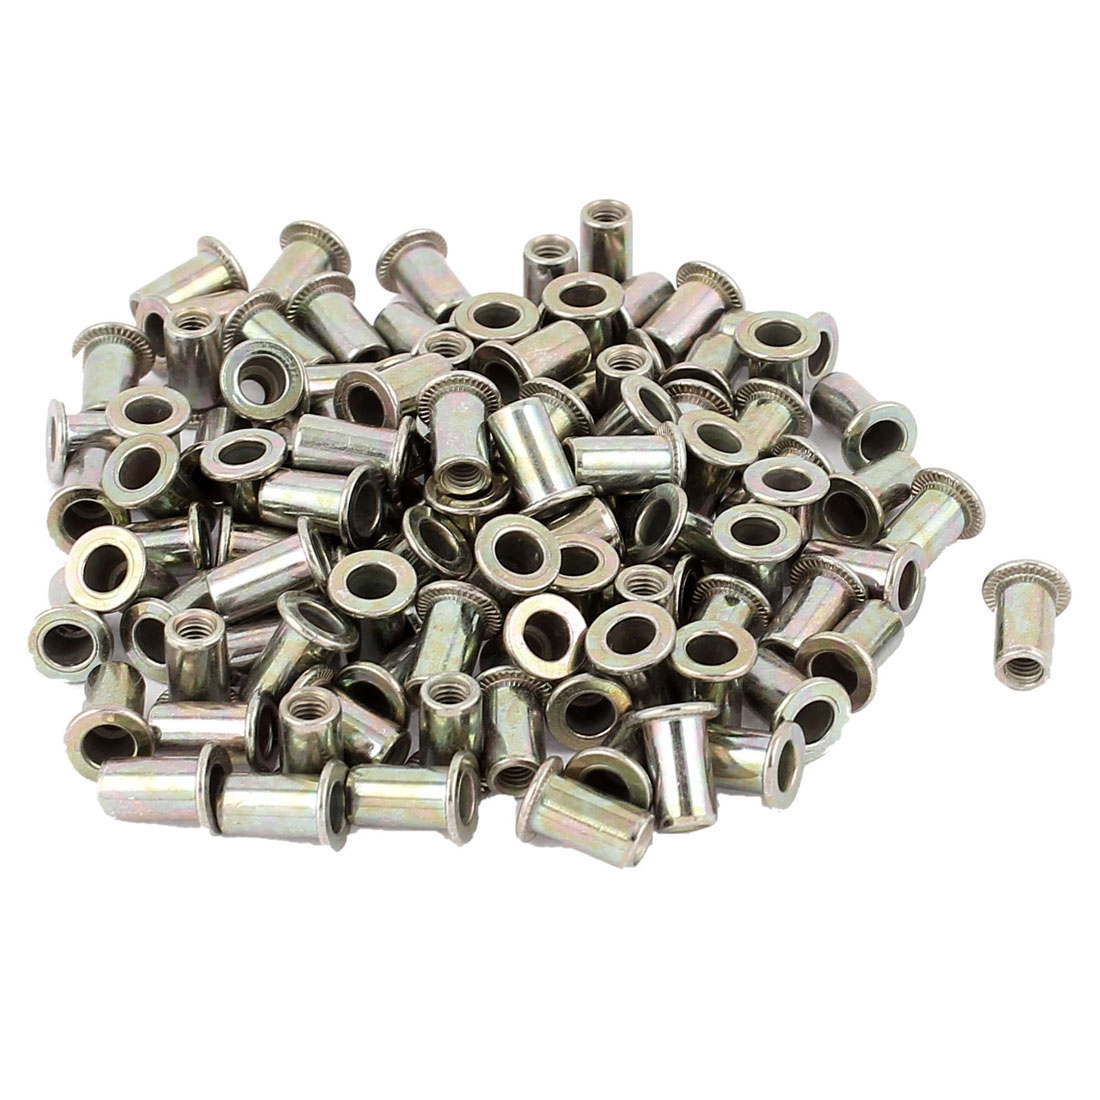 3mm Thread Dia Zinc Plated Rivet Nut Insert Nutsert Brass Tone 100Pcs